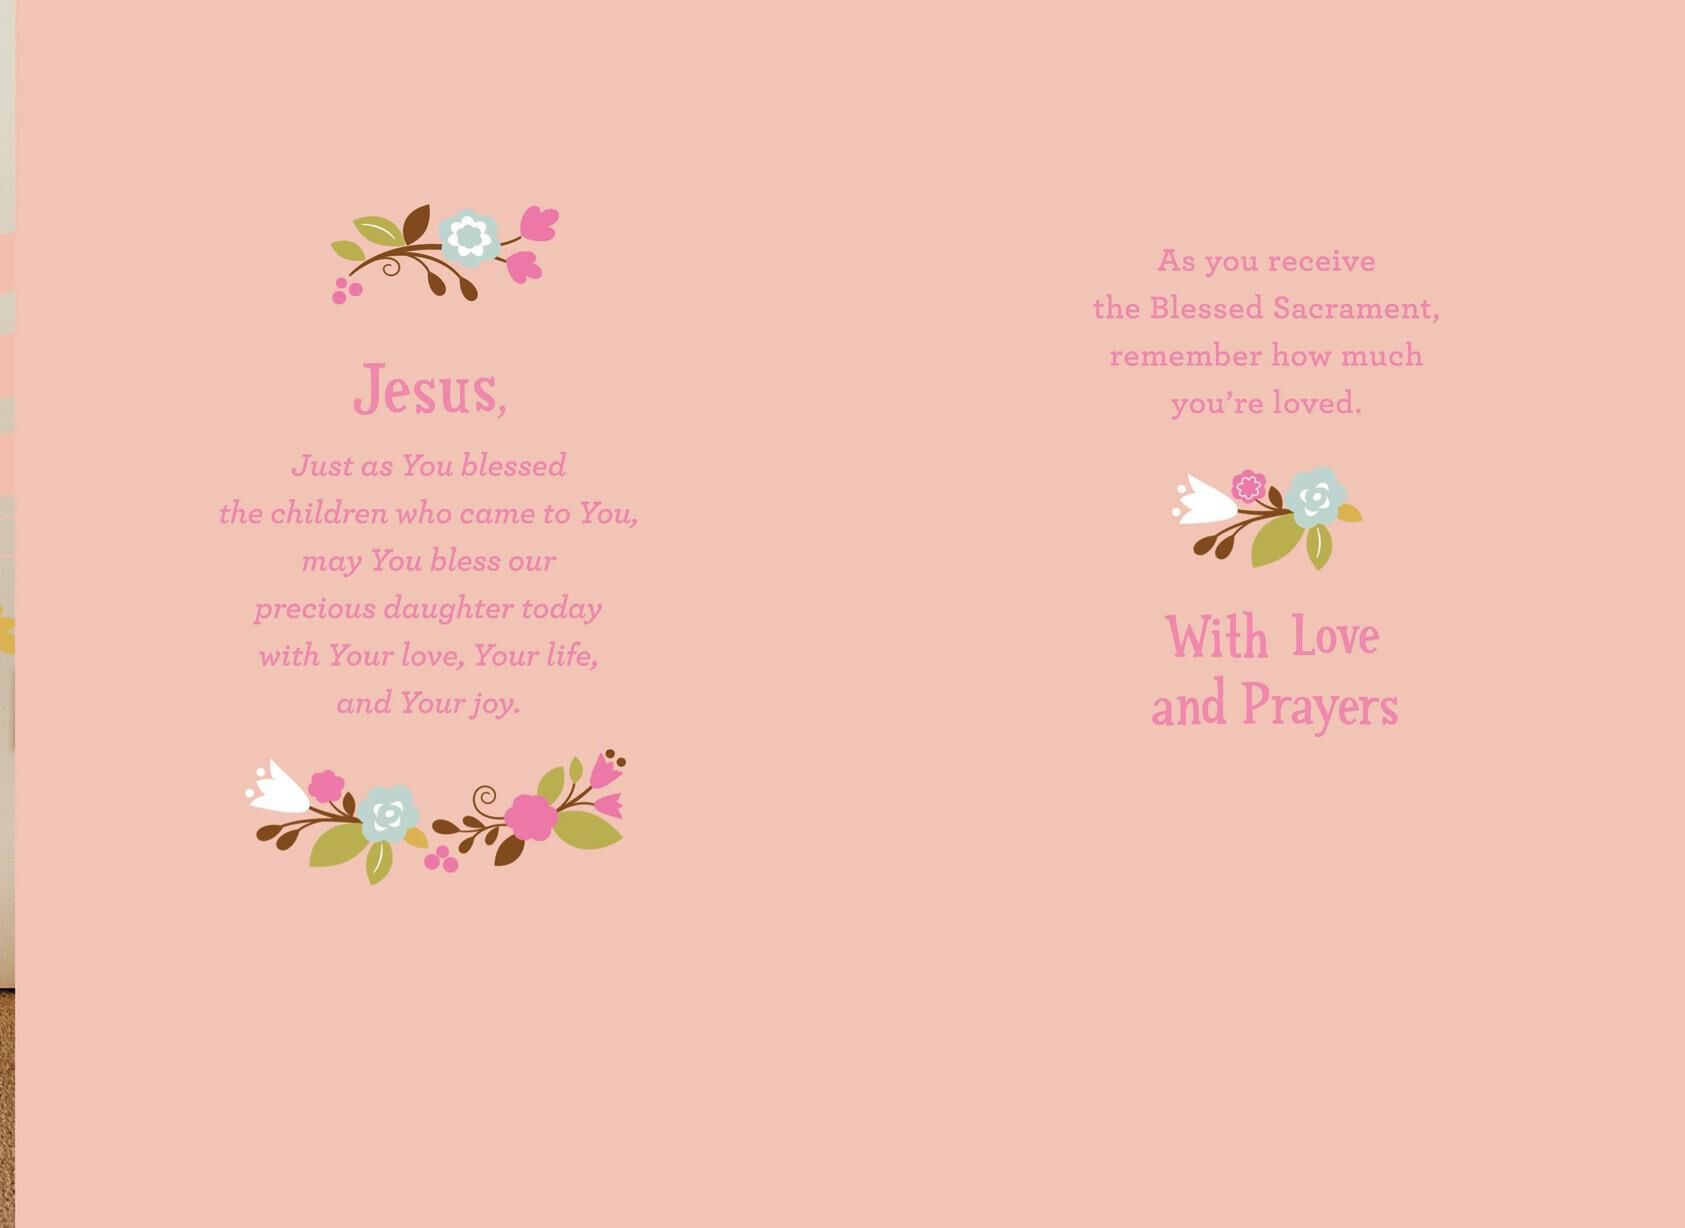 It's just a photo of Printable First Communion Cards for message